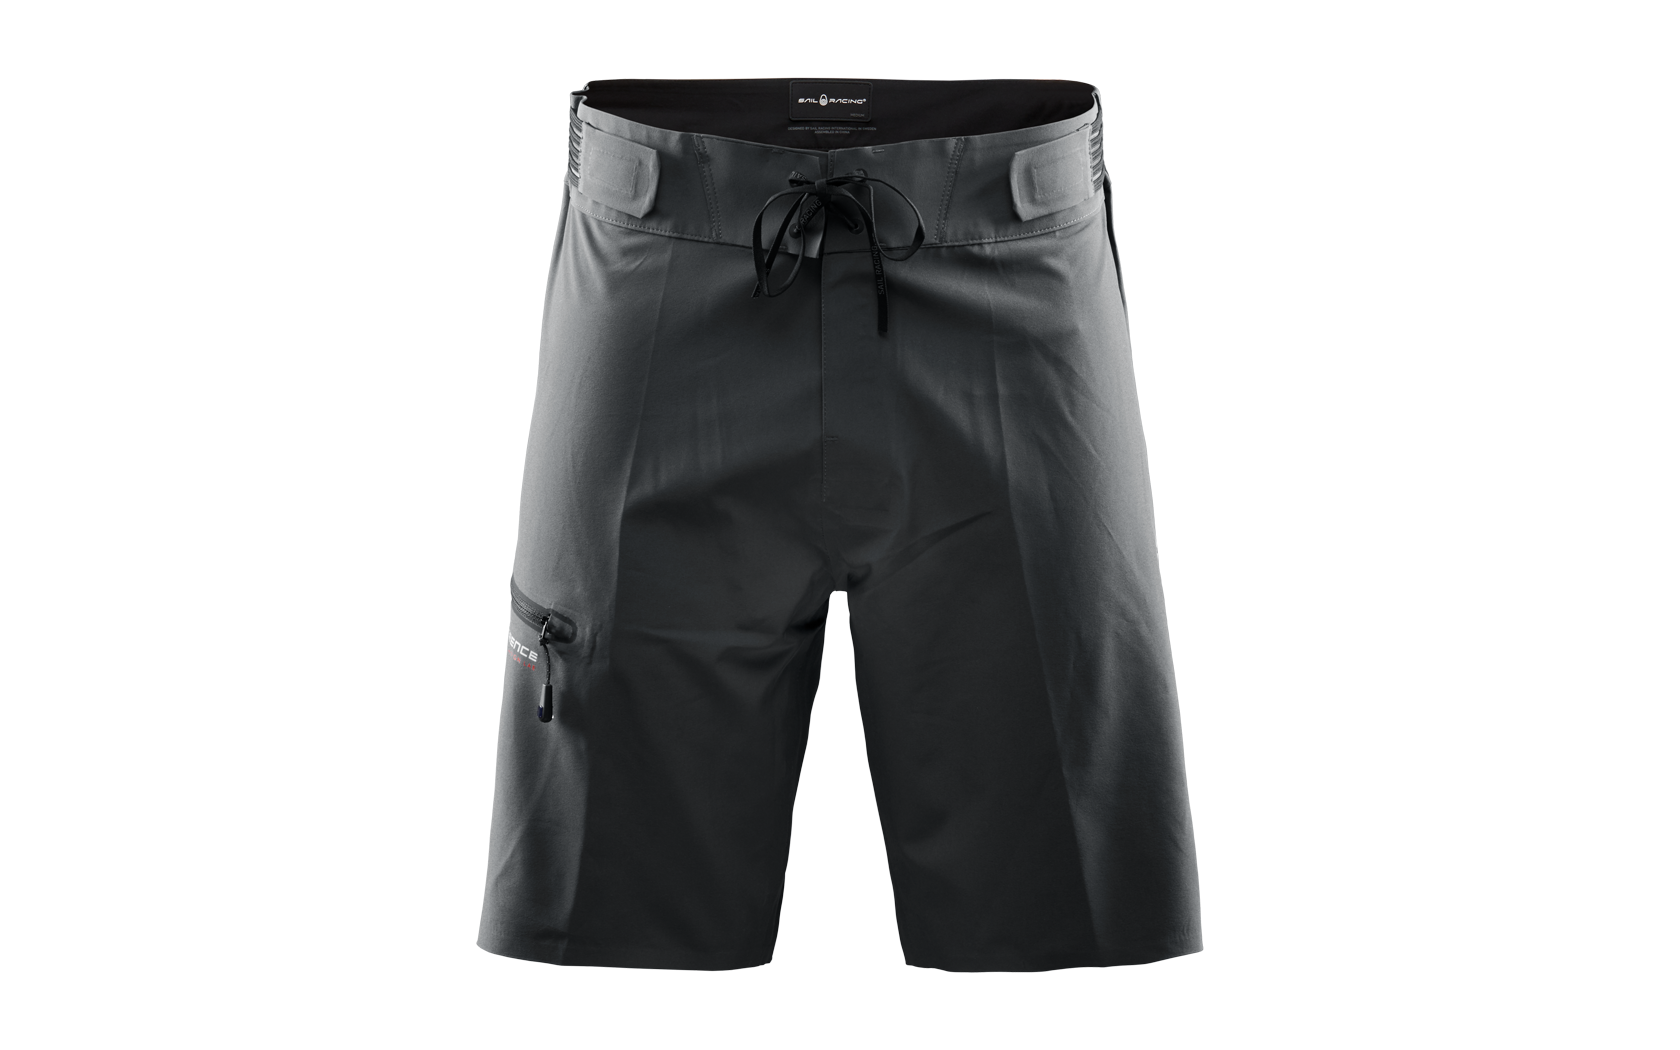 REFERENCE SAILSHORTS